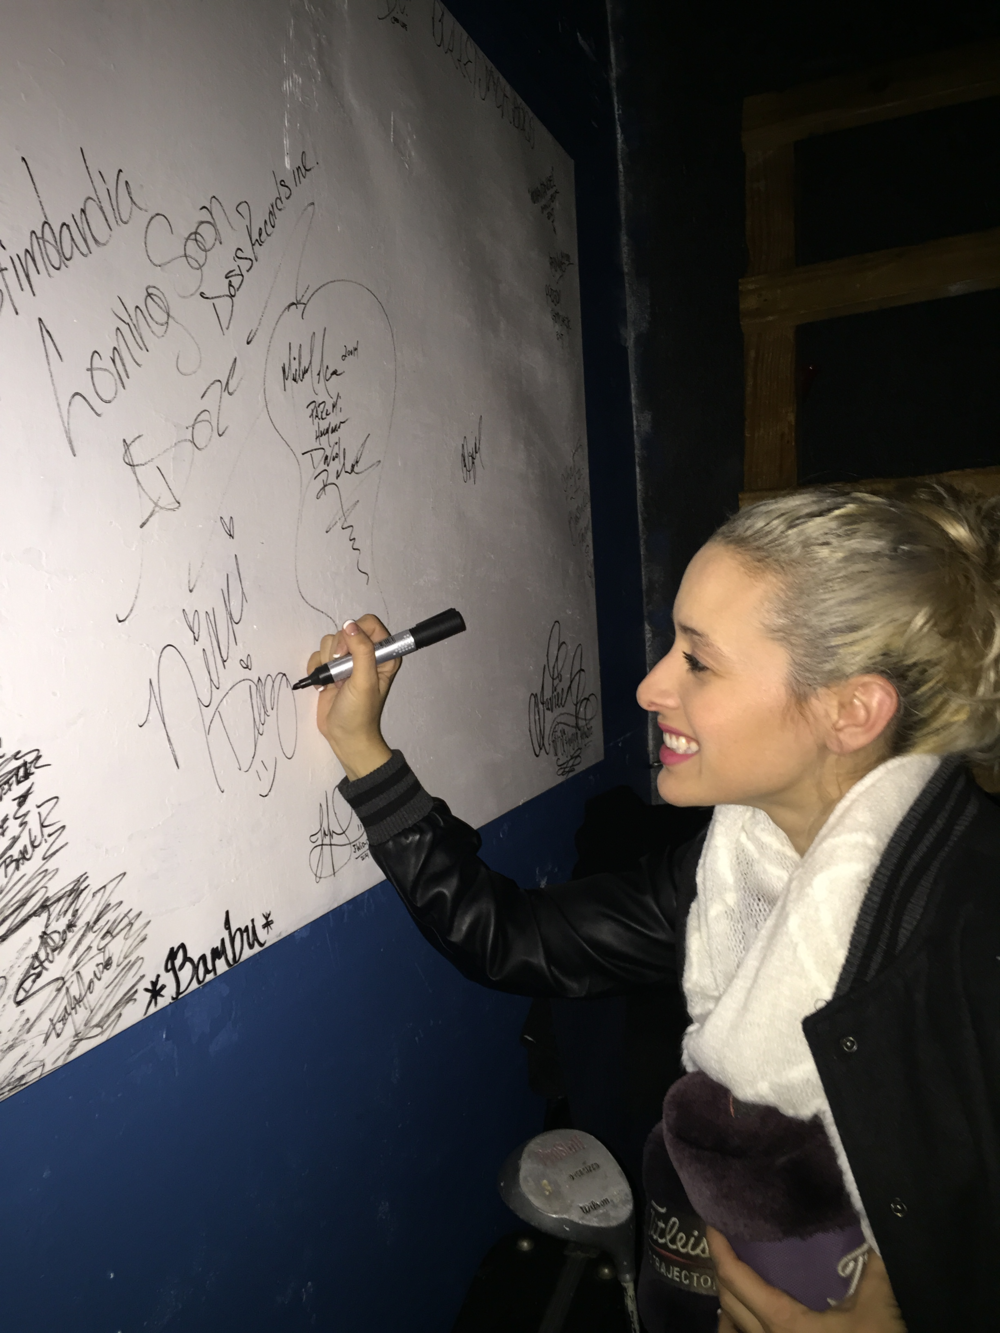 Signing the wall at David Rolas' studio in Los Angeles, CA